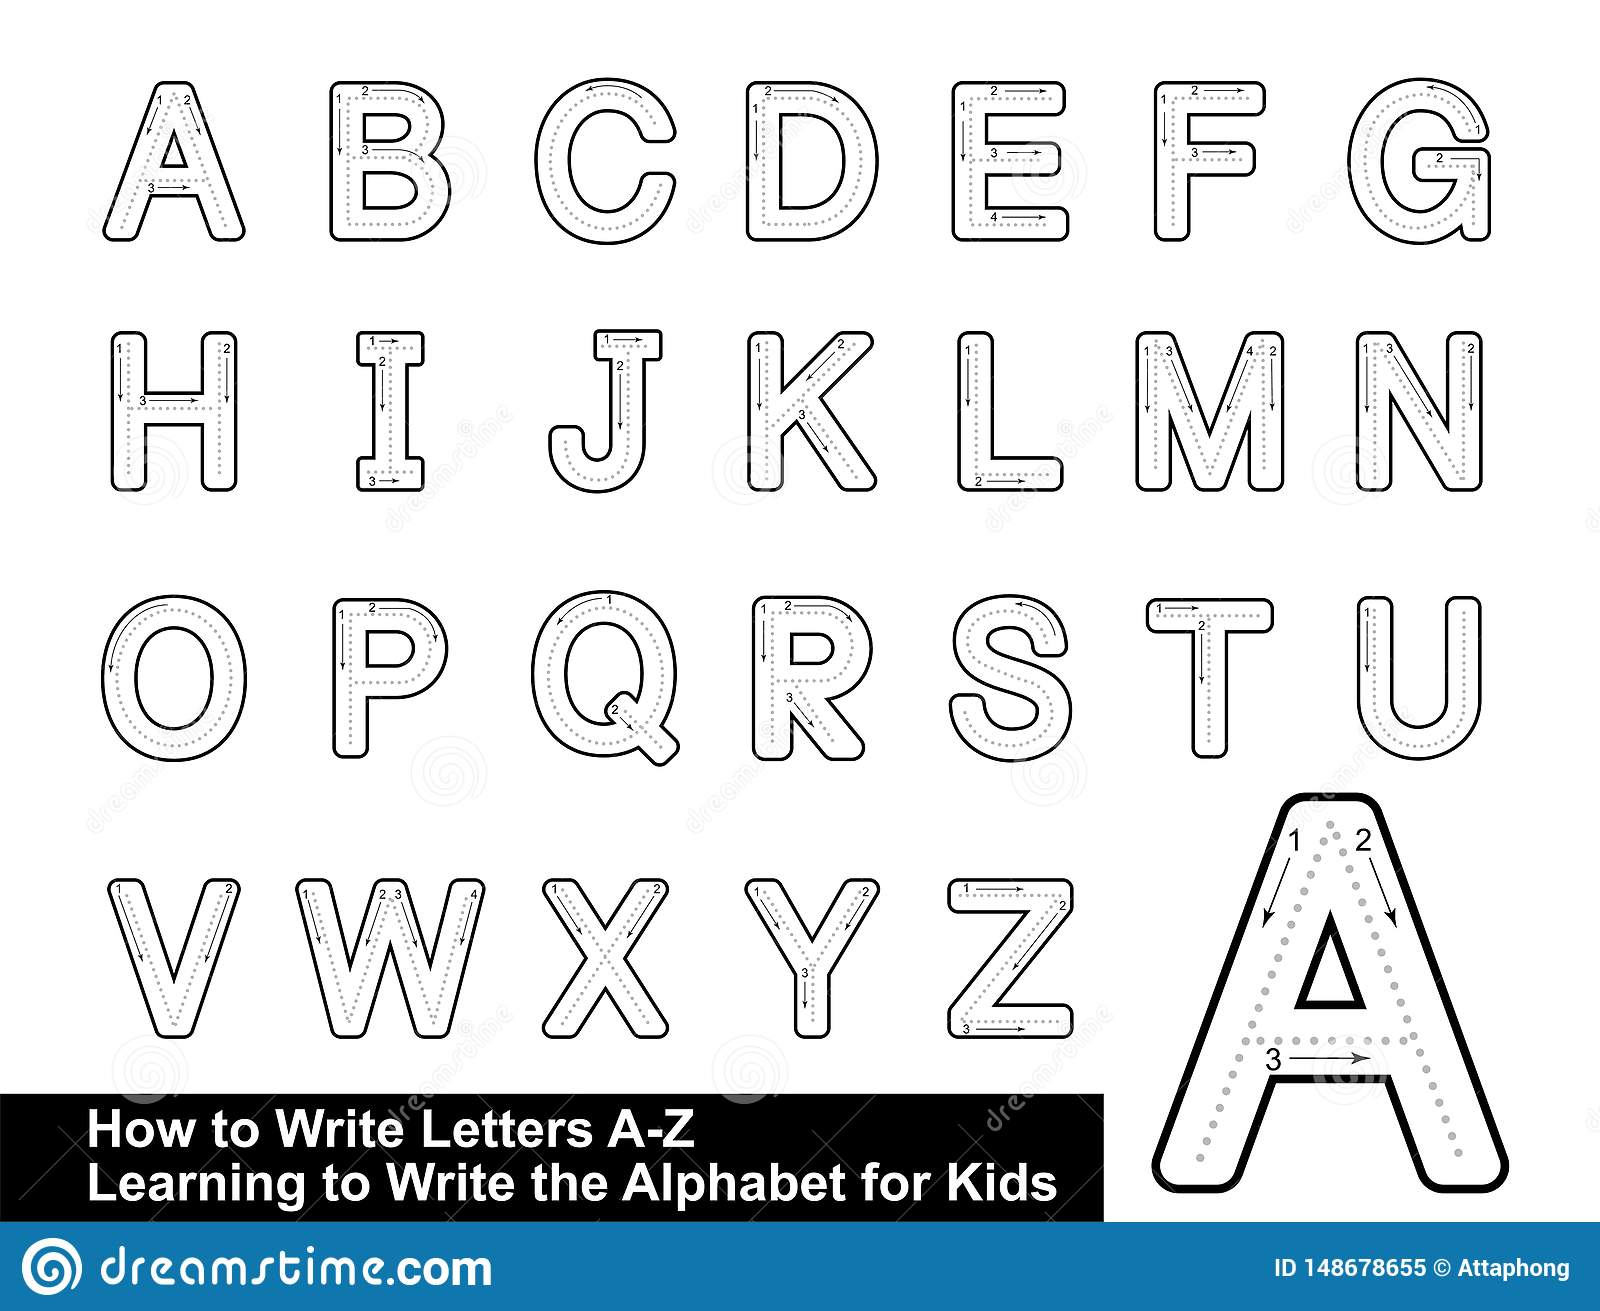 Alphabet Tracing Letters Stepstep Letter Tracing Write regarding Free Alphabet Tracing Letters